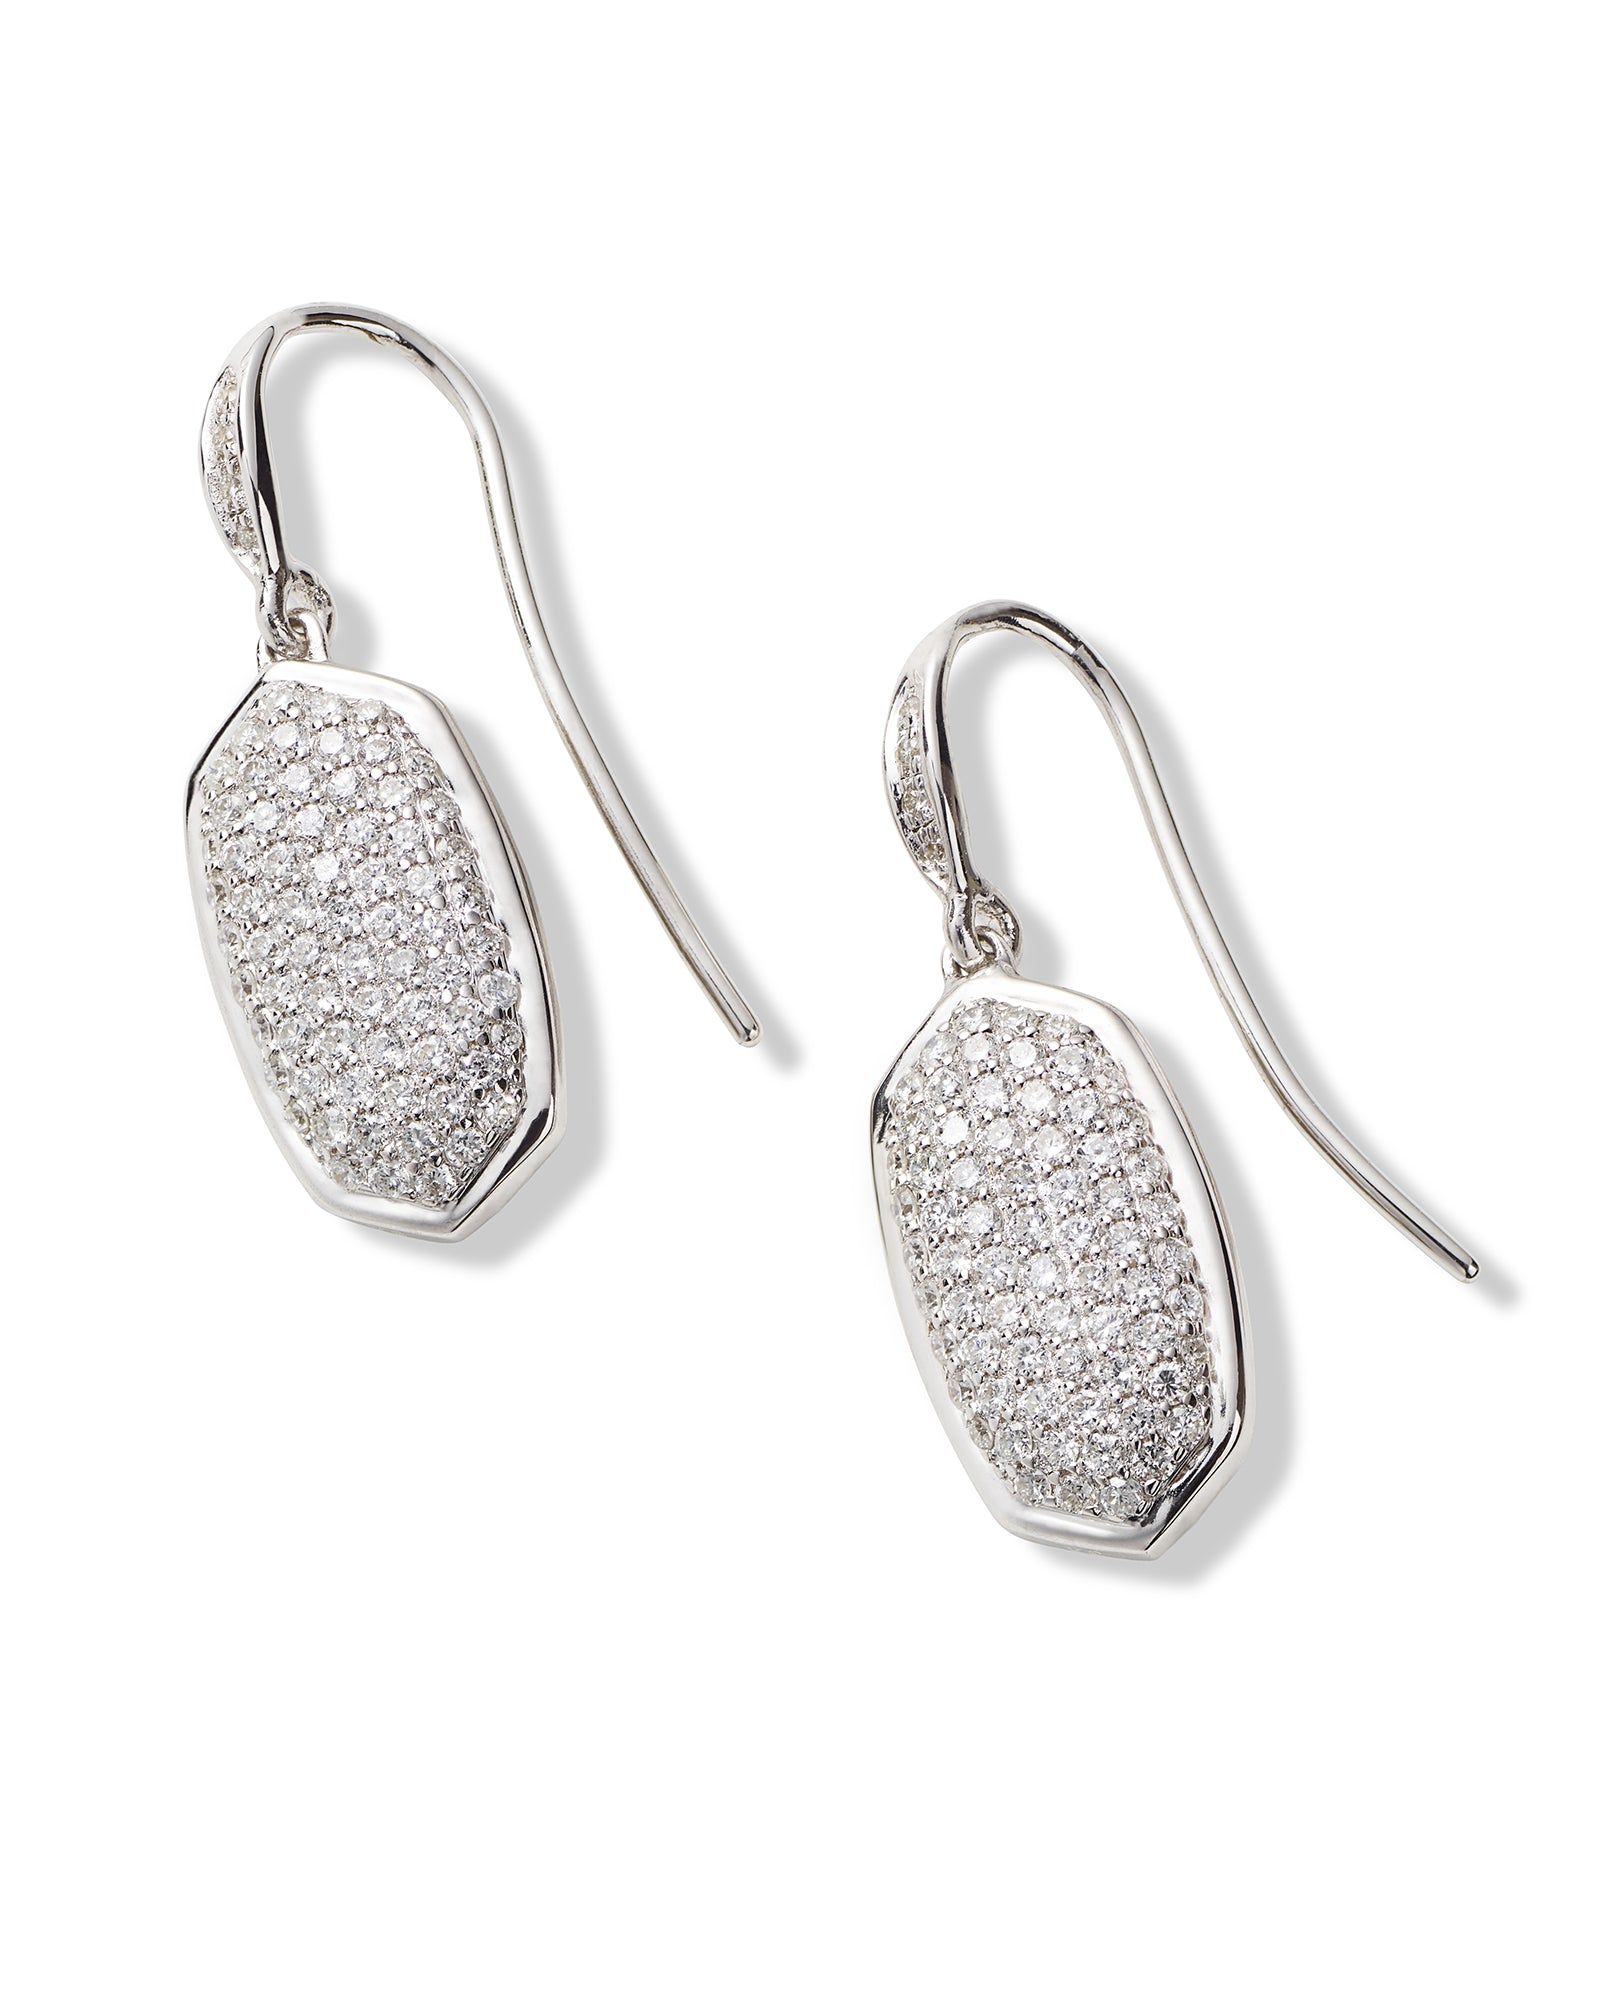 Swarovski Elements Dangling Micro-Pav'e Earrings in 18K Gold